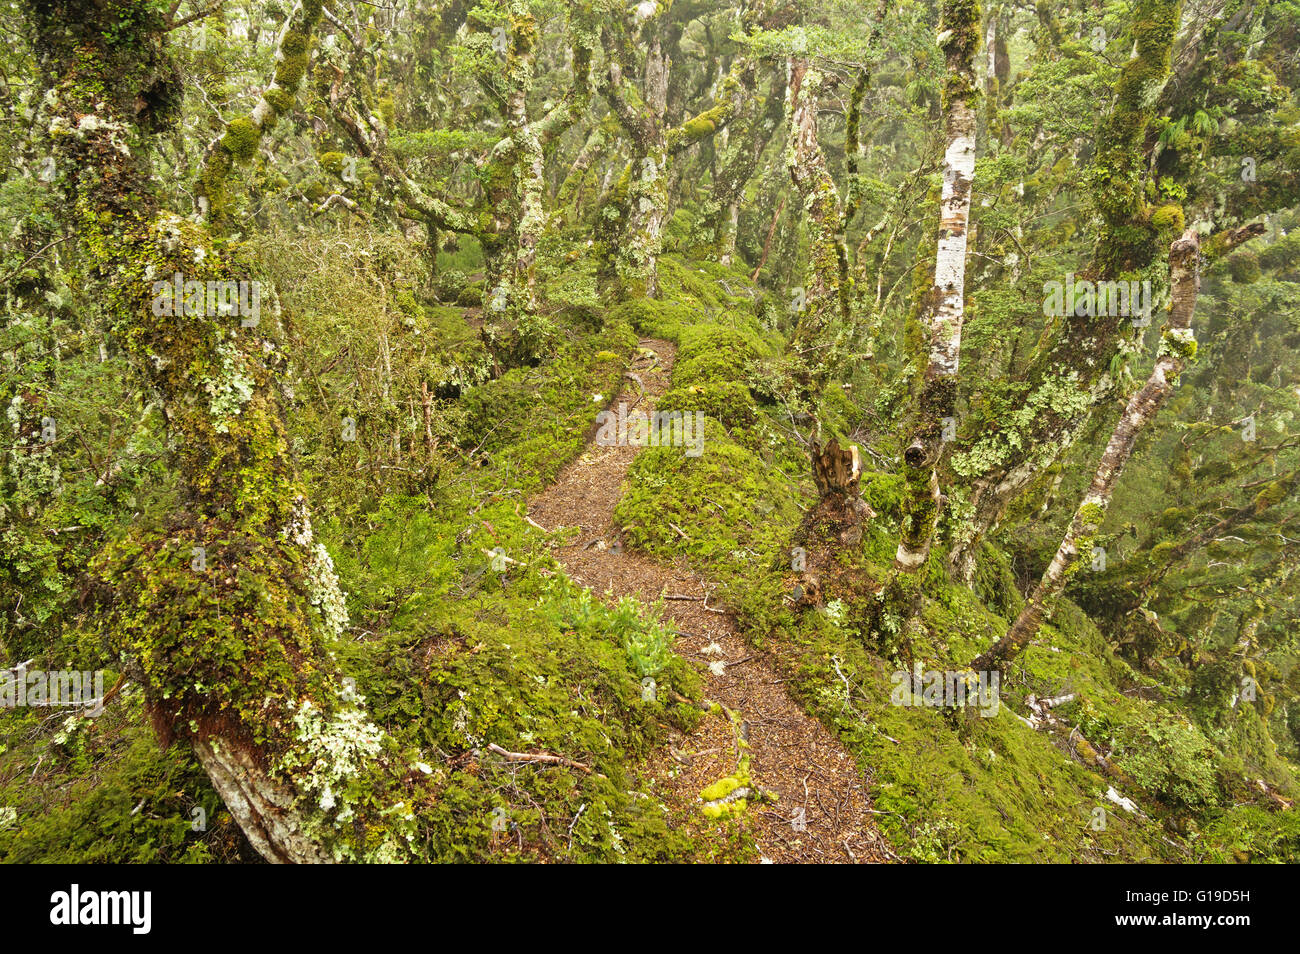 Tuatapere Hump Ridge Track path through the mossy New Zealand forest - Stock Image